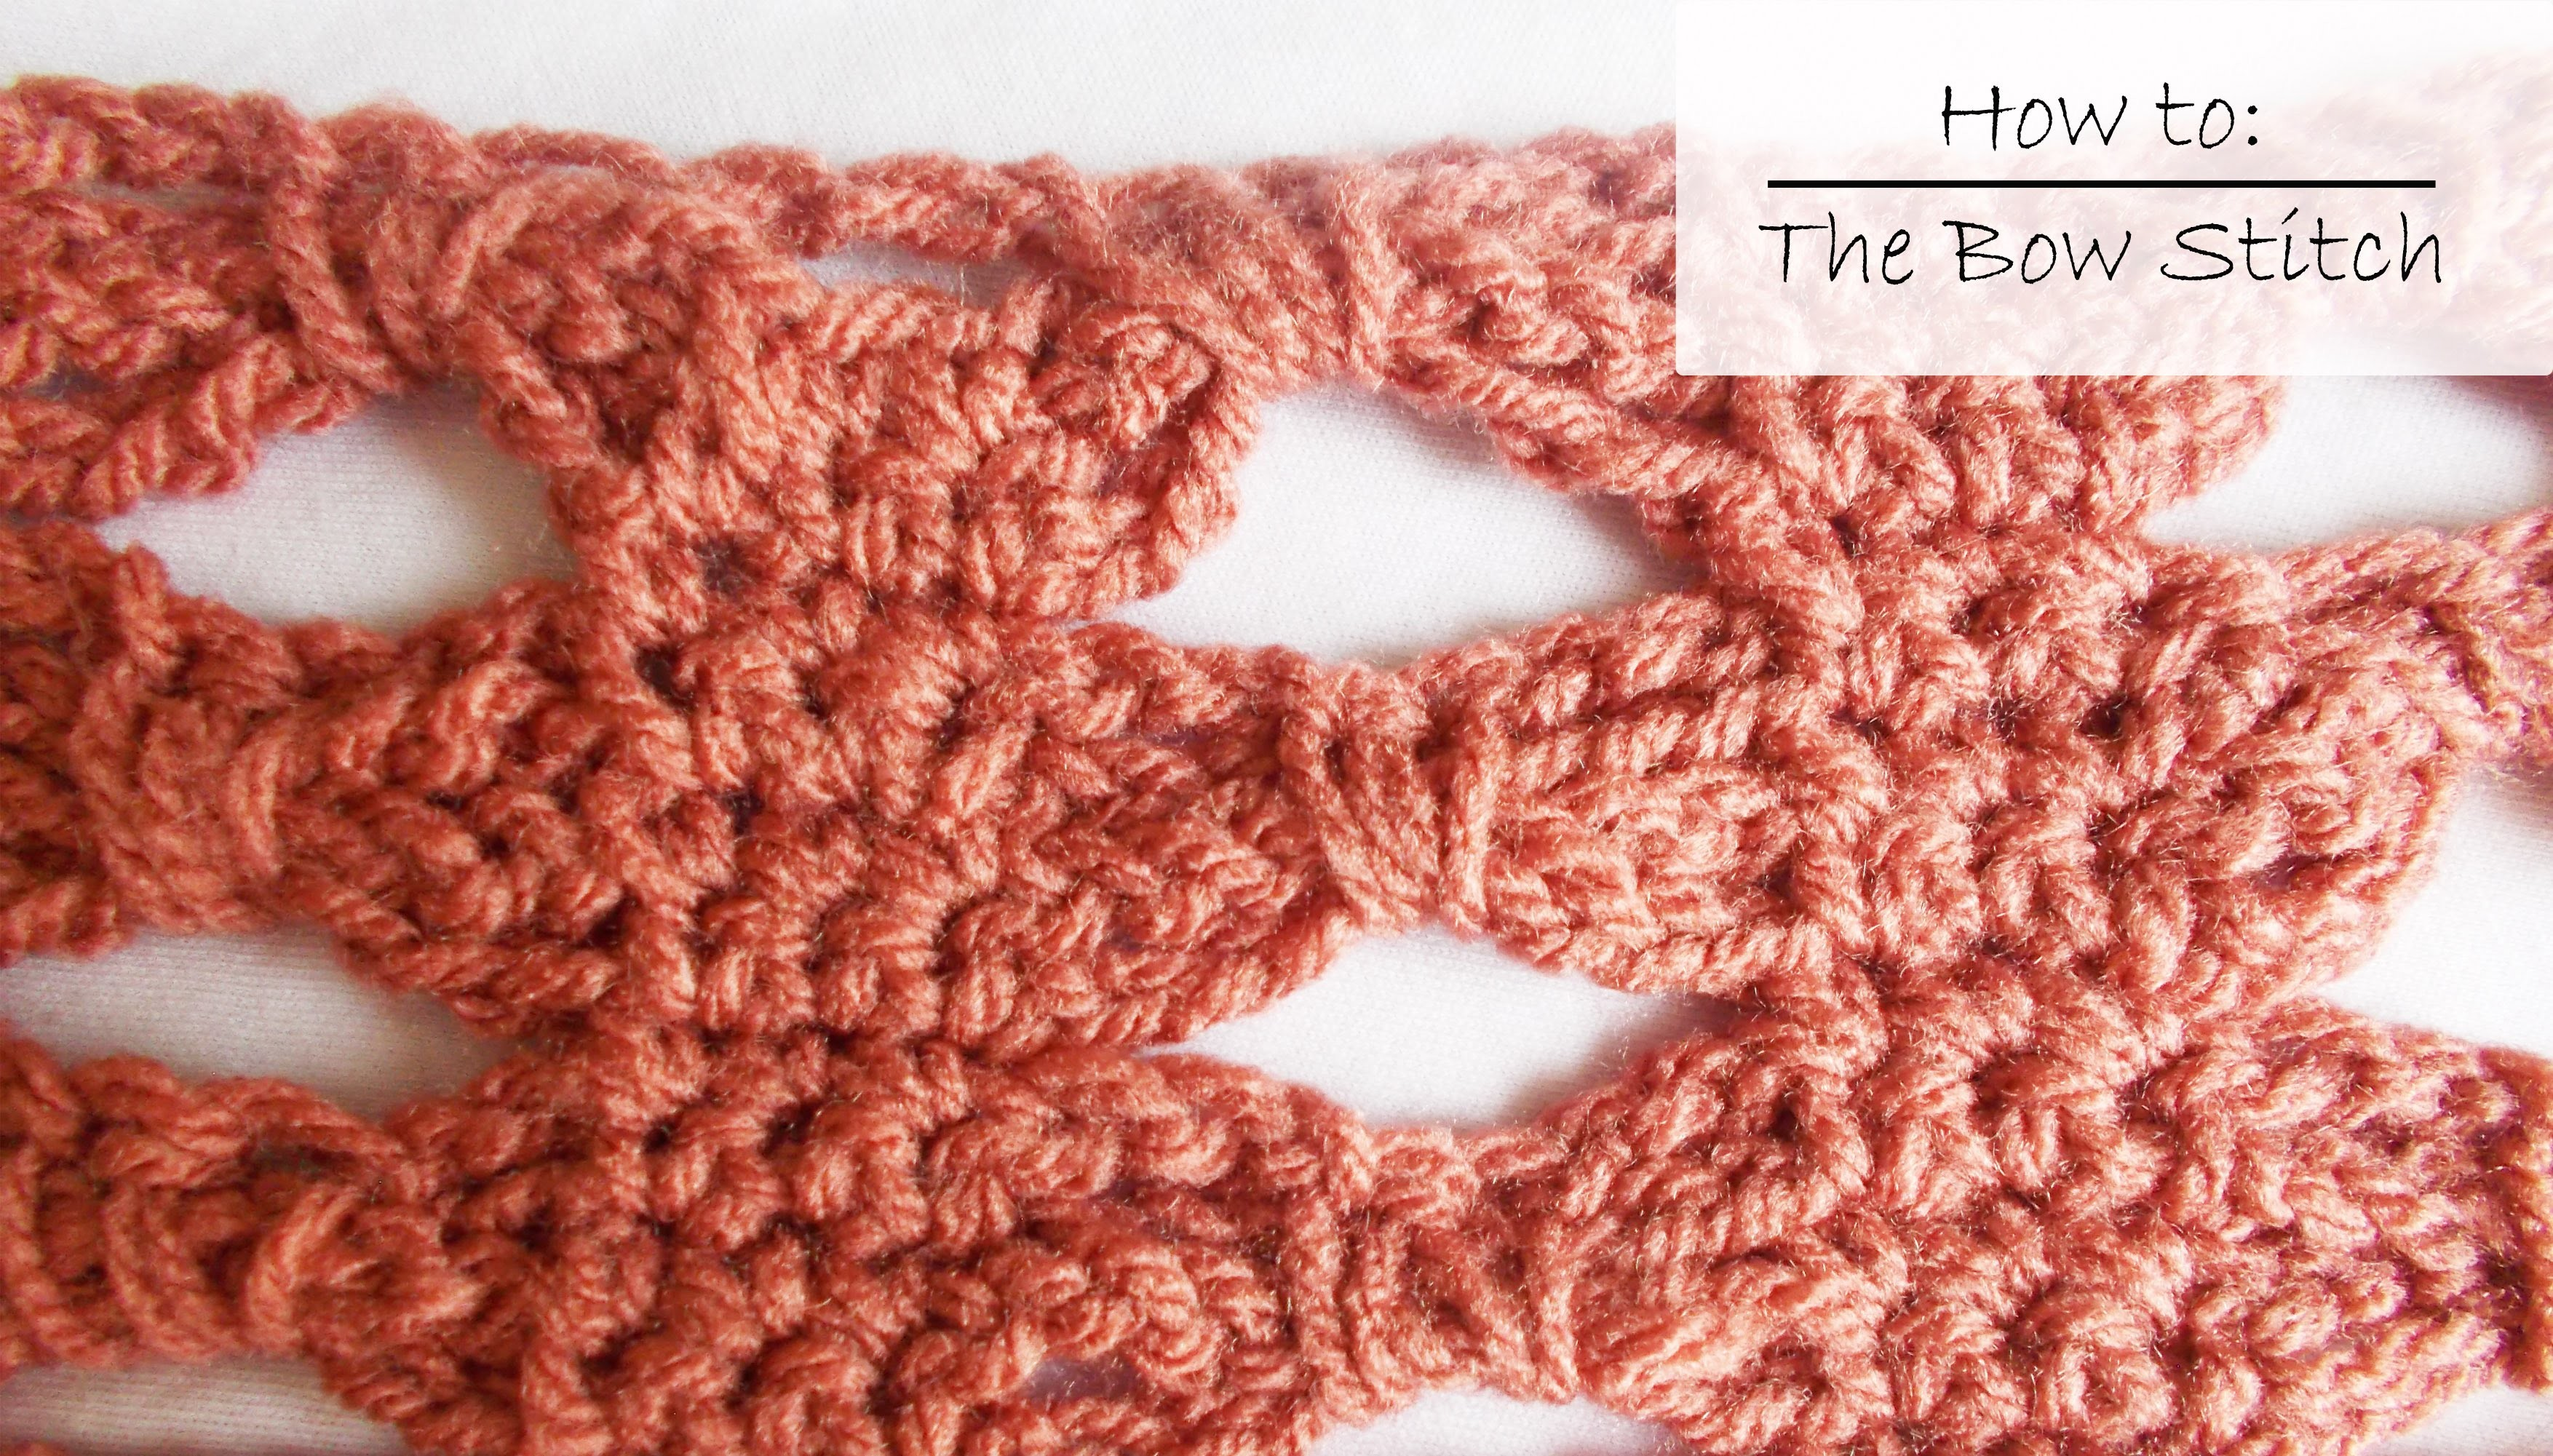 How to crochet The Bow Stitch!